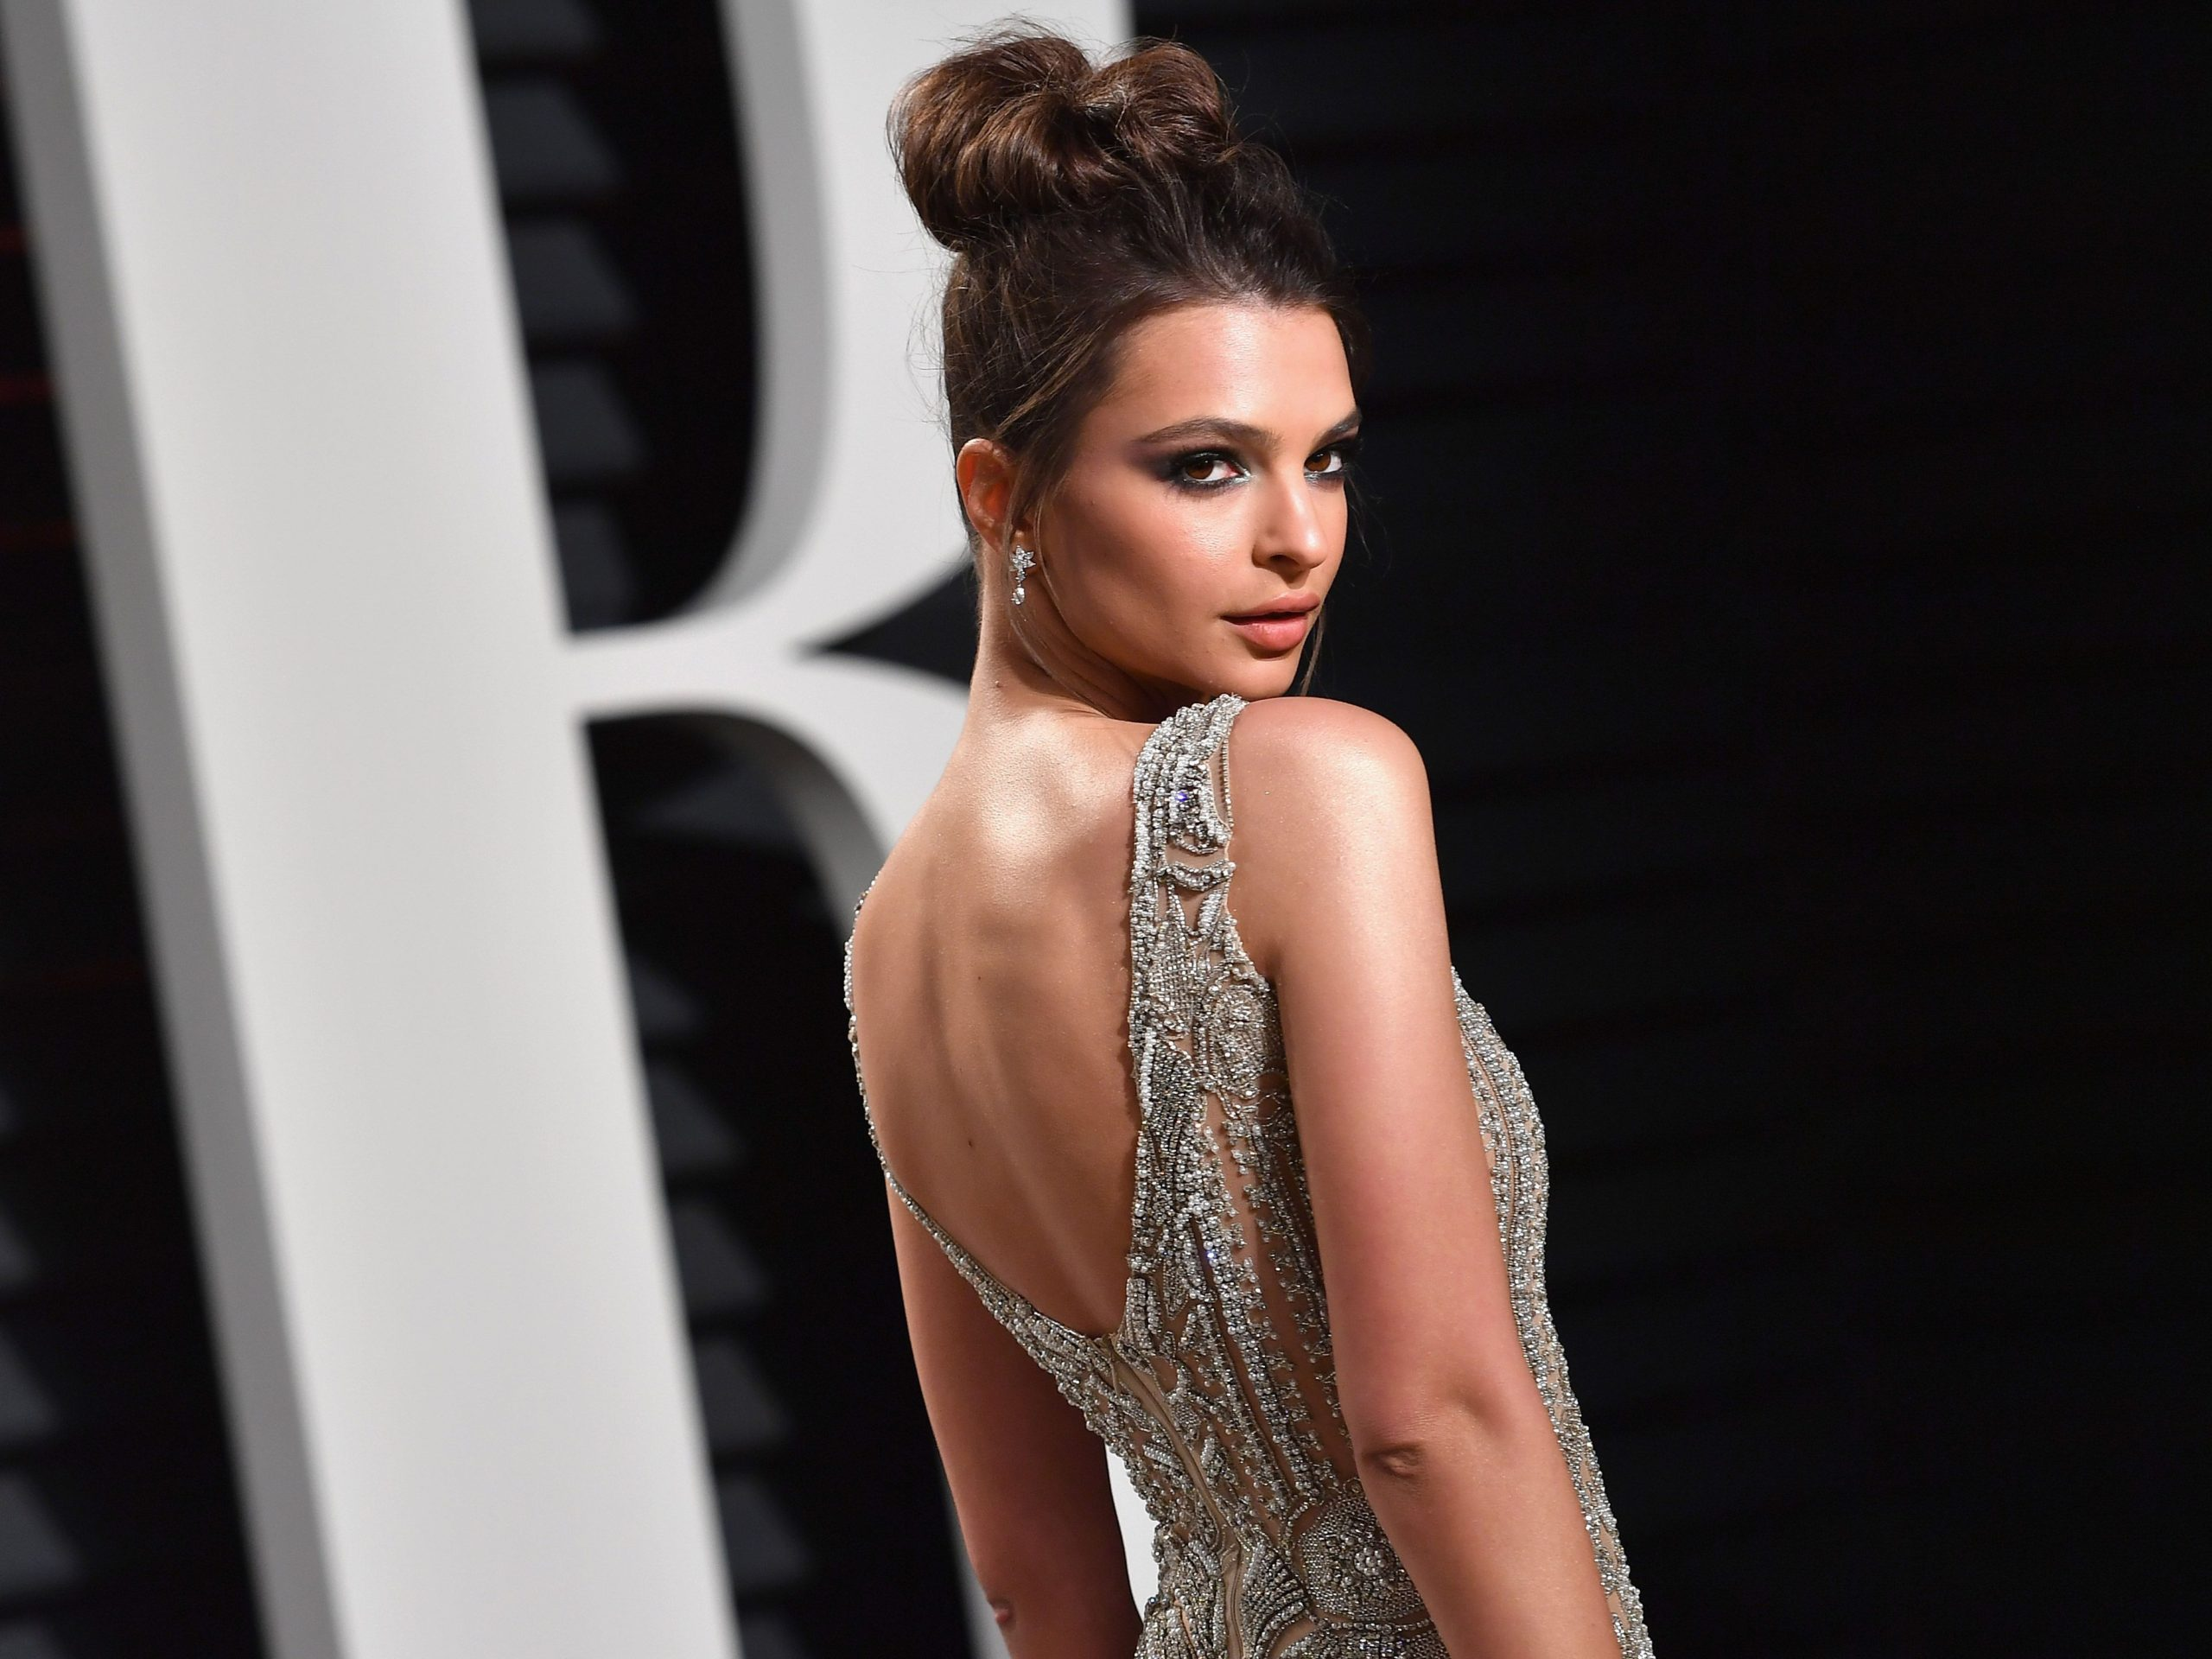 Emily Ratajkowski Nice Dress scaled - Emily Ratajkowski Net Worth, Pics, Wallpapers, Career and Biography